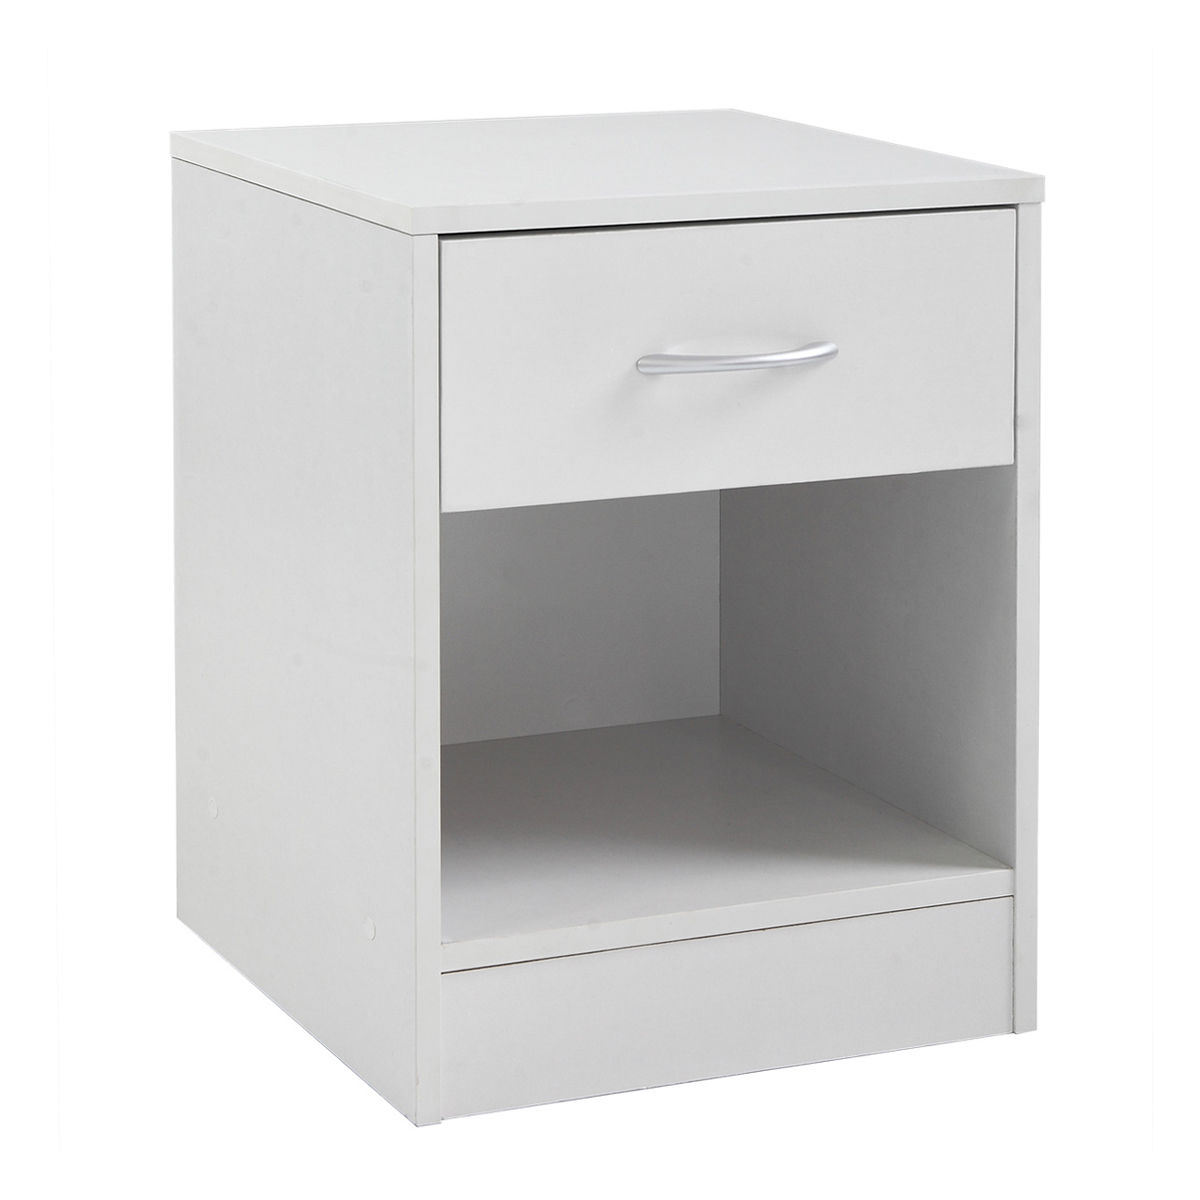 Set Of 2 White Bedside Nightstand End Table Bedroom Furniture 1 Drawer  Storage